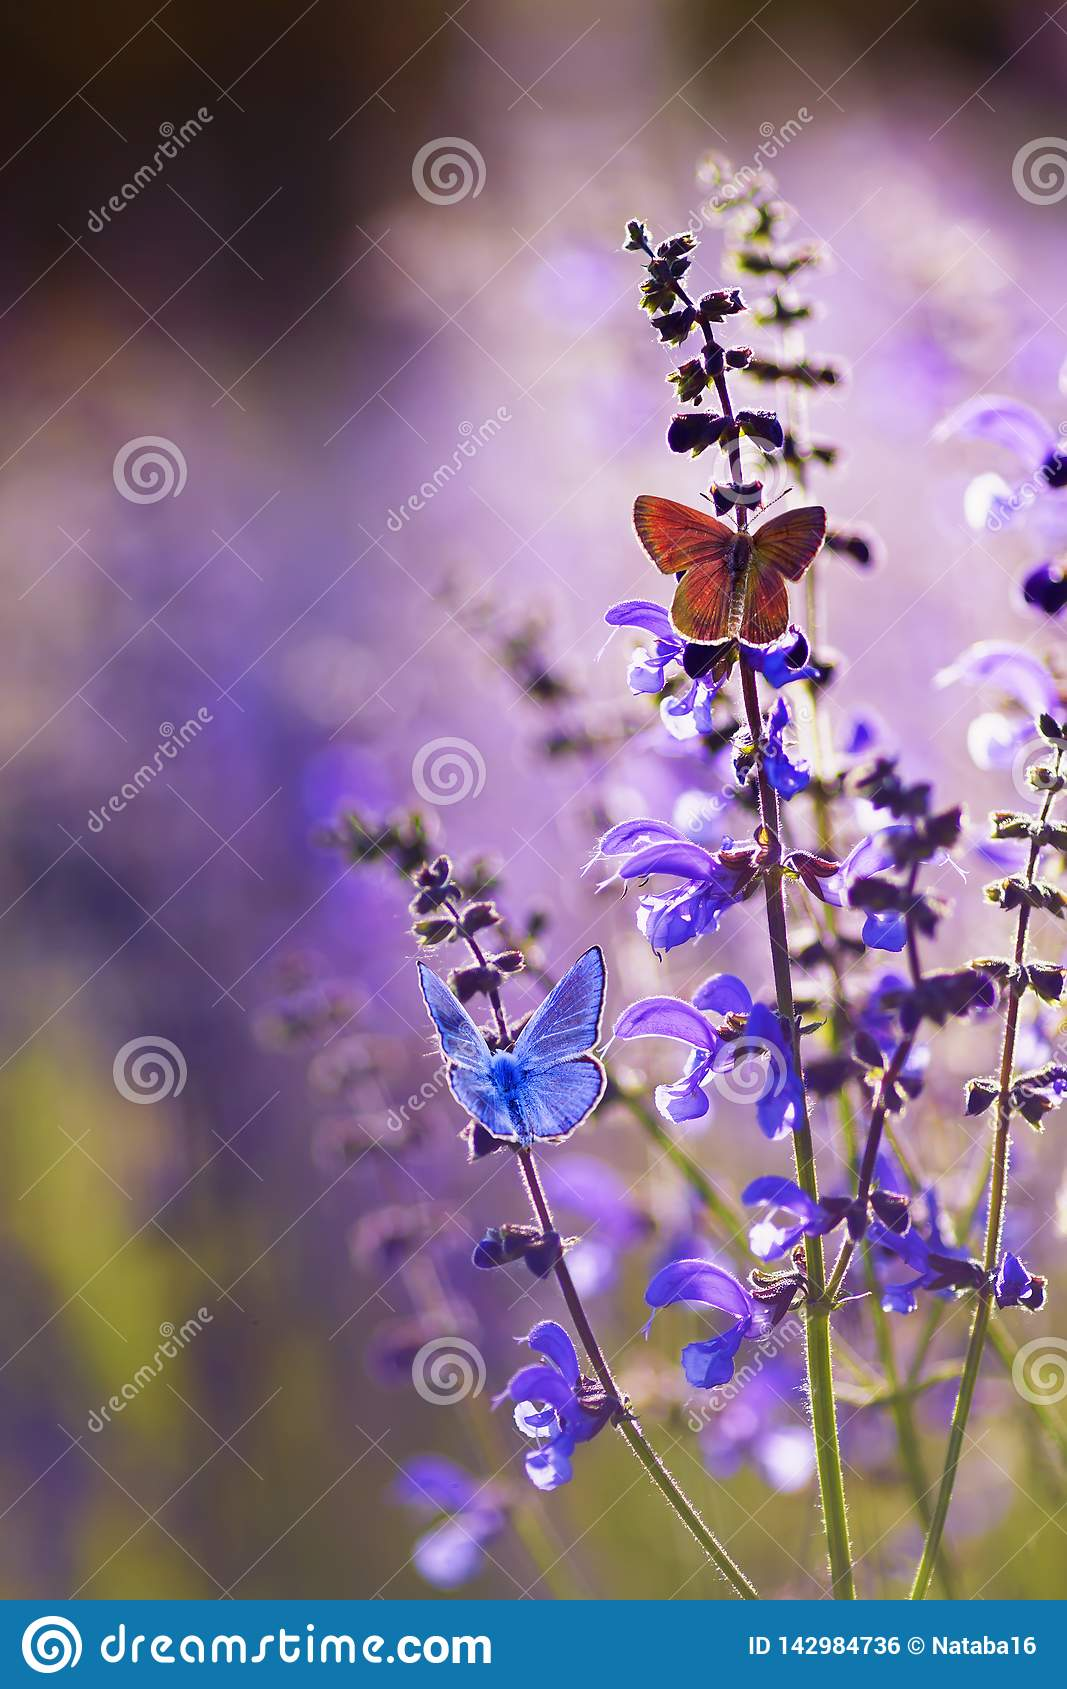 Natural greeting card with two small bright orange and blue butterflies pigeon sitting on purple flowers on a Sunny summer day in